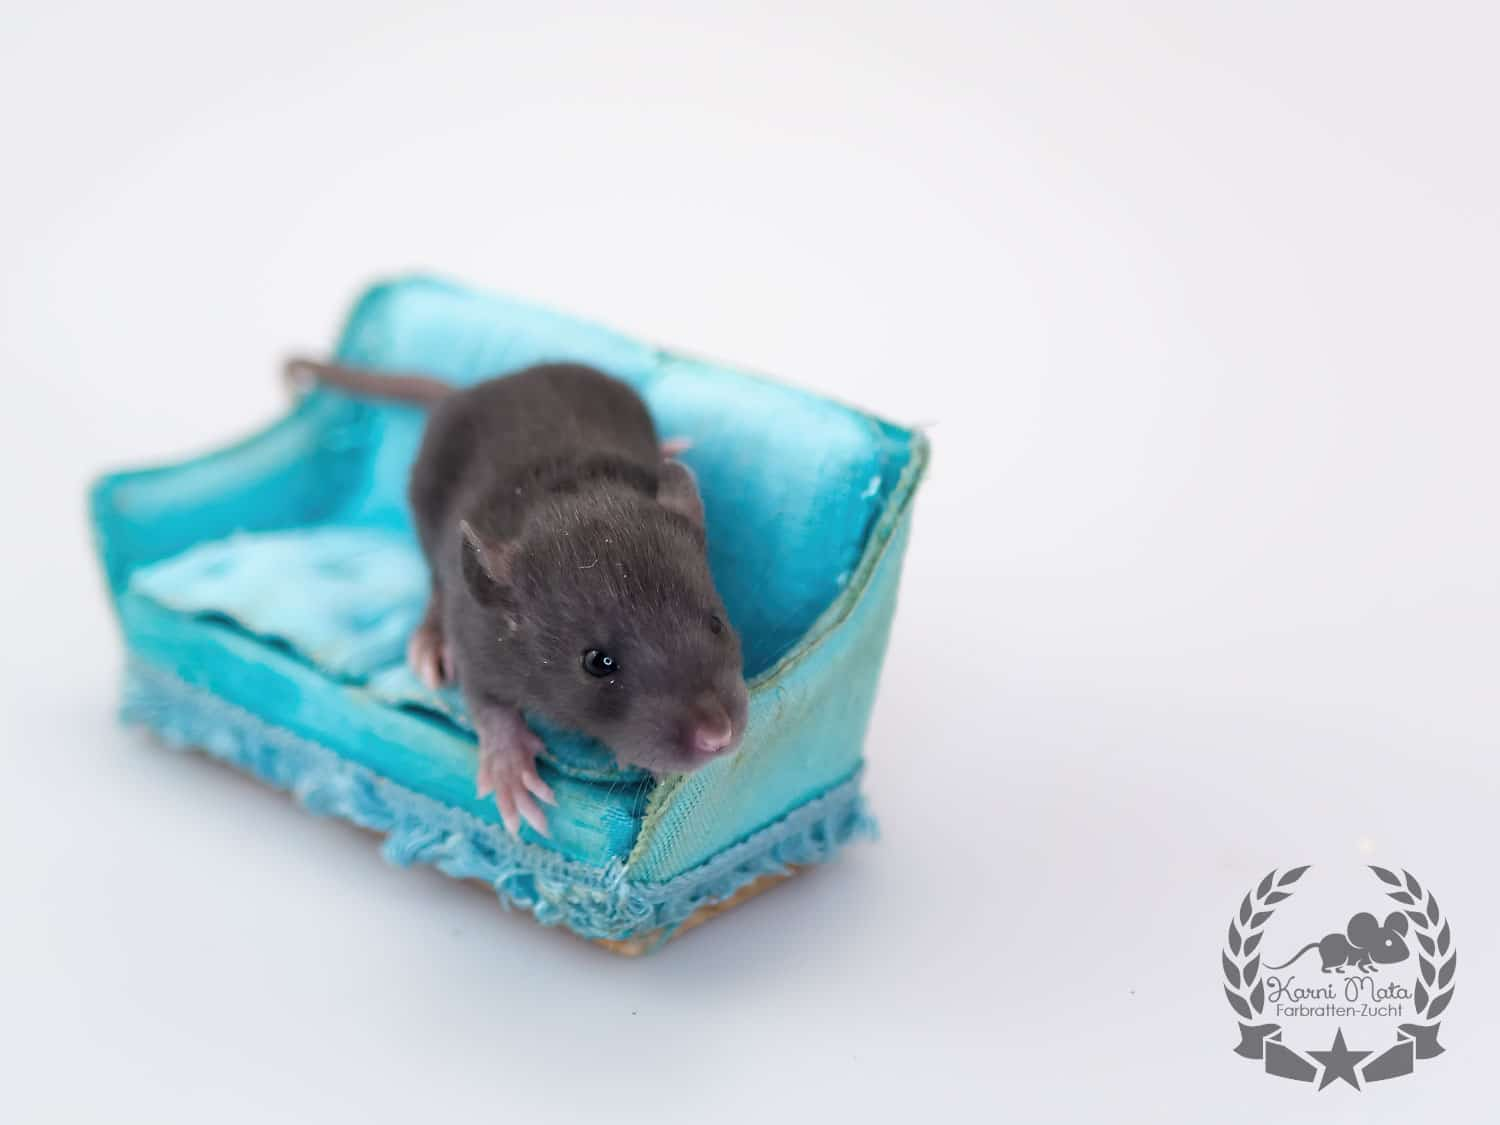 Mira KM J4 f 08, Farbratte (Fancyrat) Black Silvermane Self